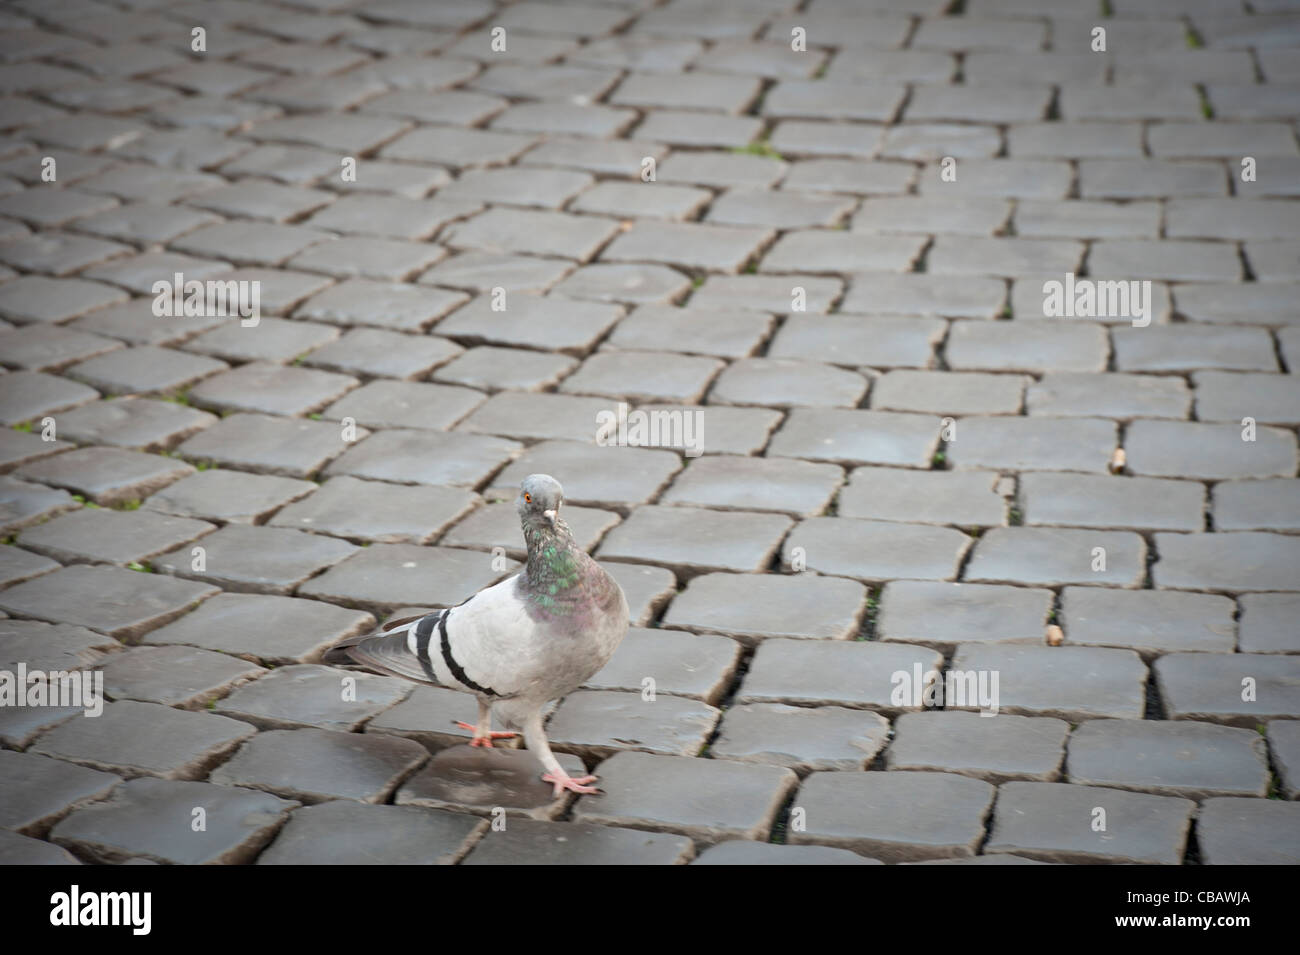 pigeon walking in streets of Rome - Stock Image